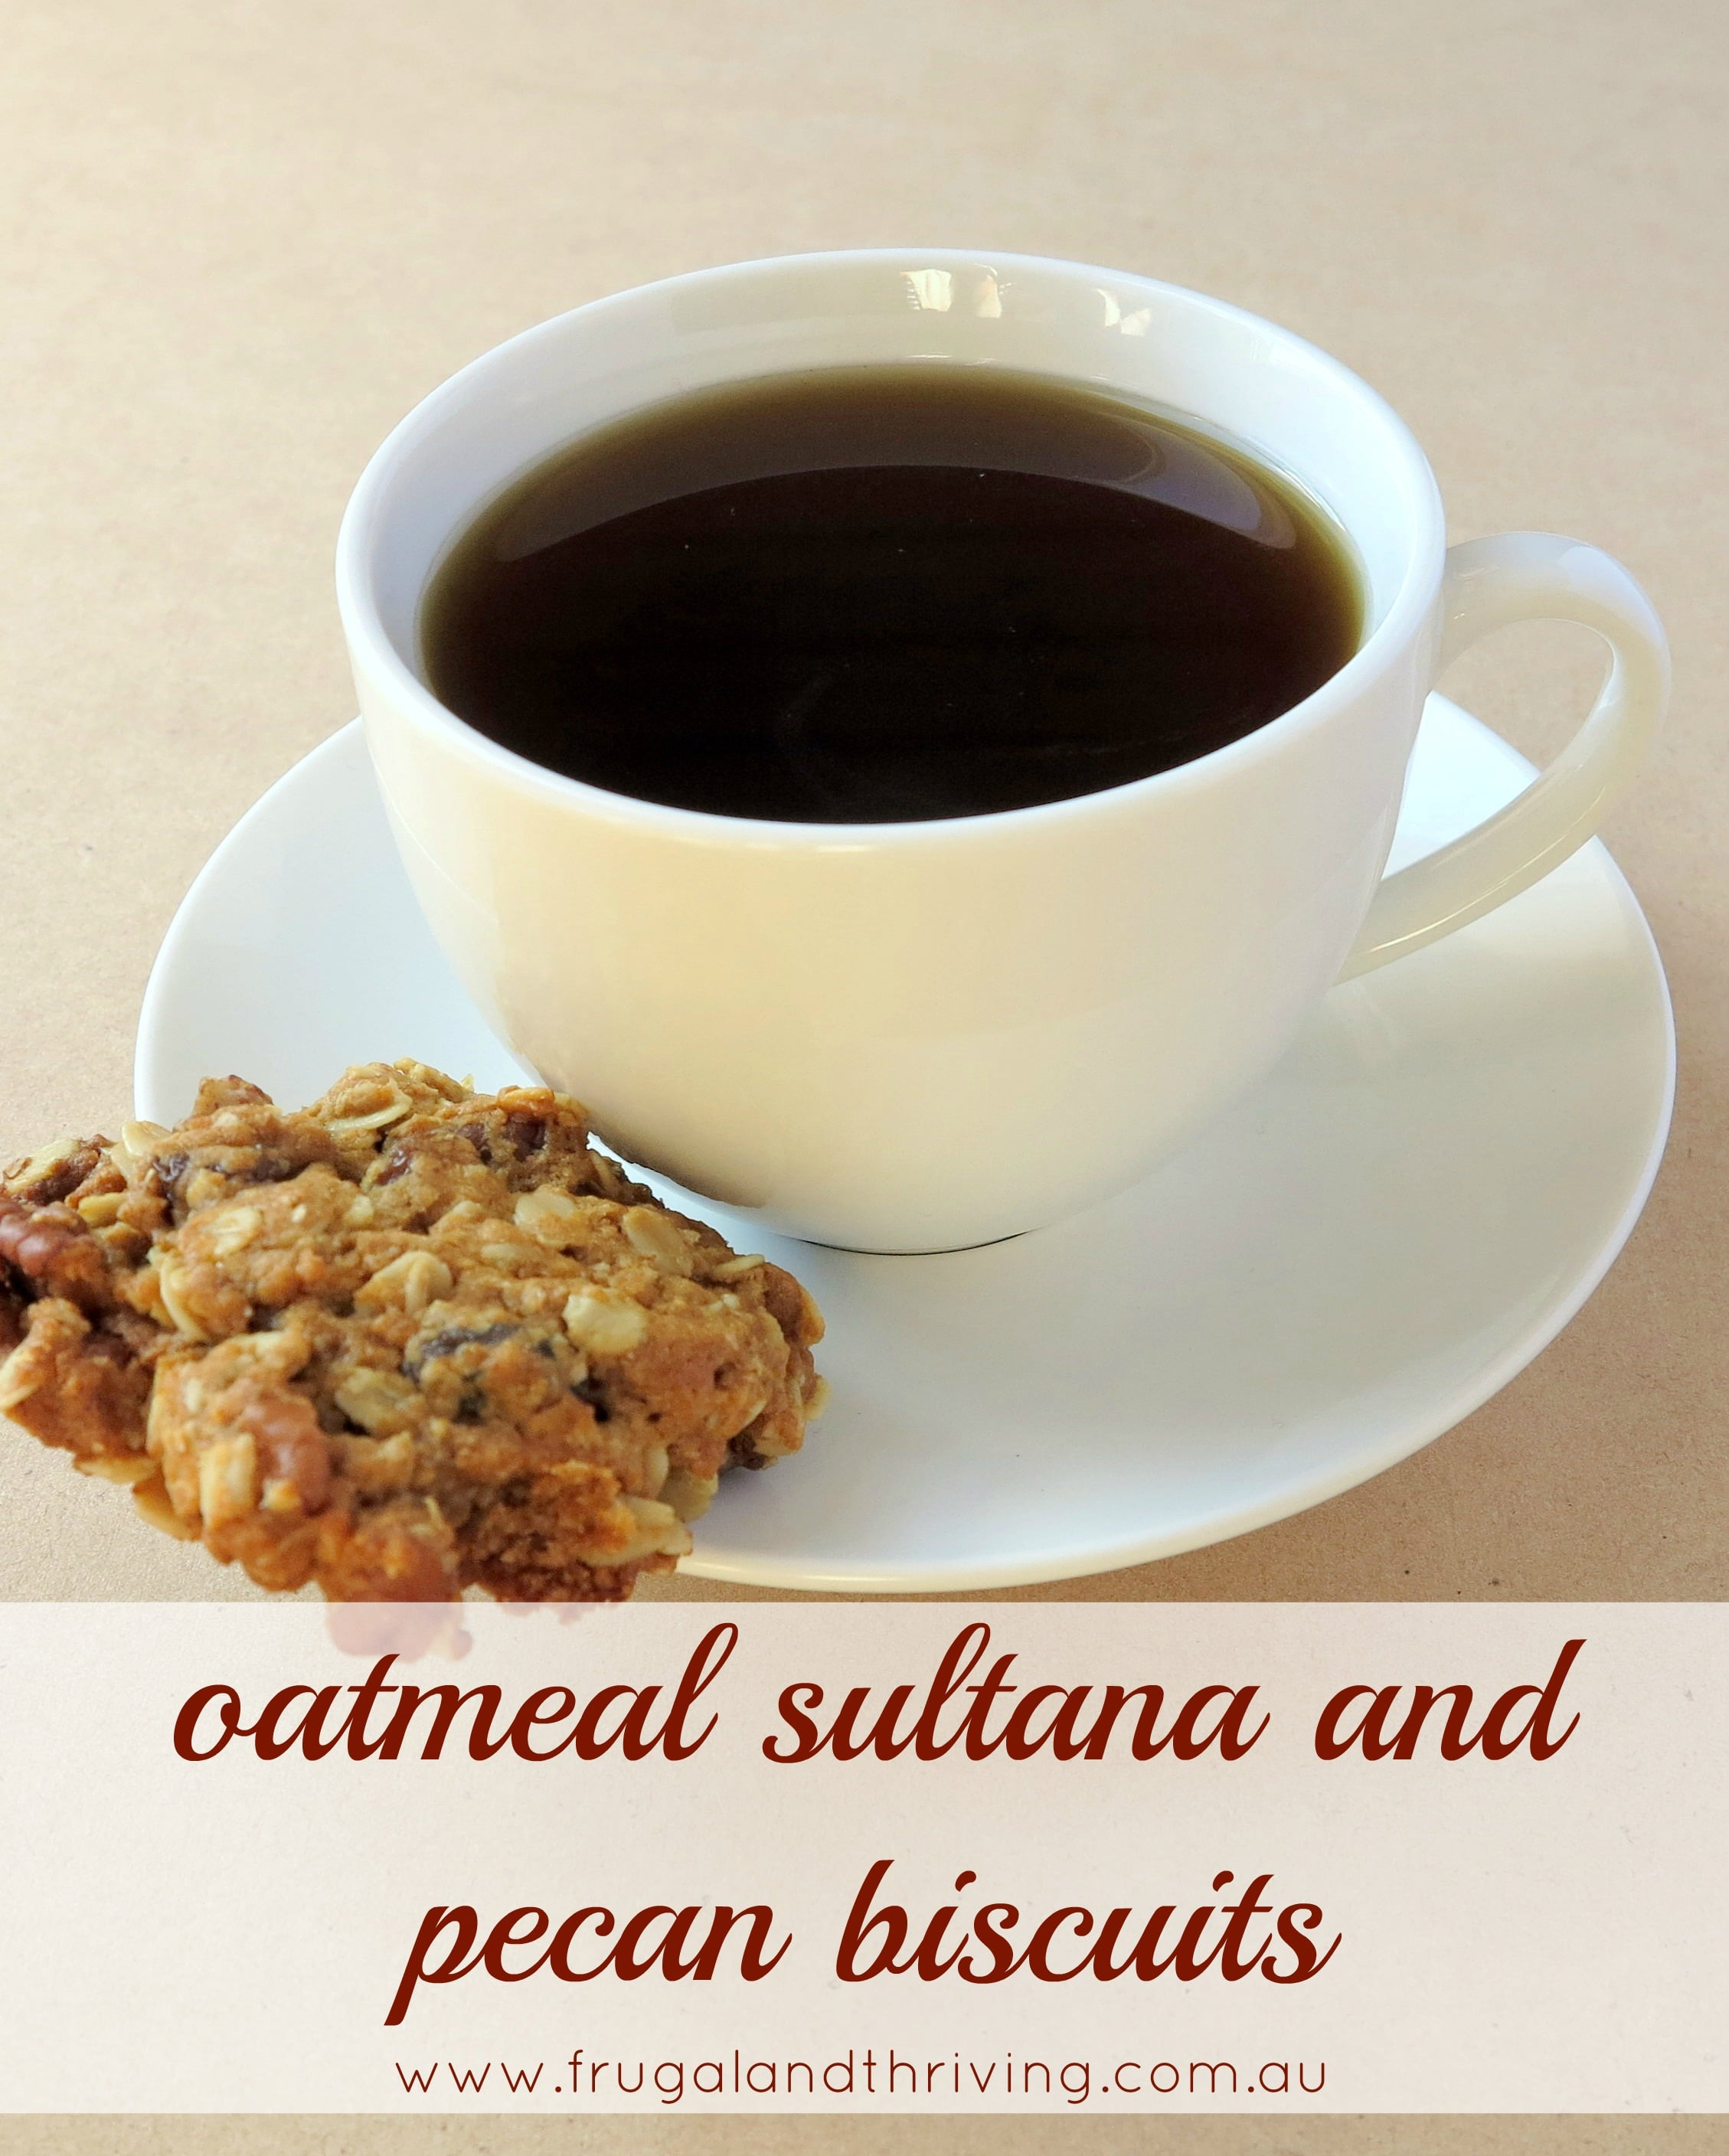 Oatmeal, sultana and pecan biscuit